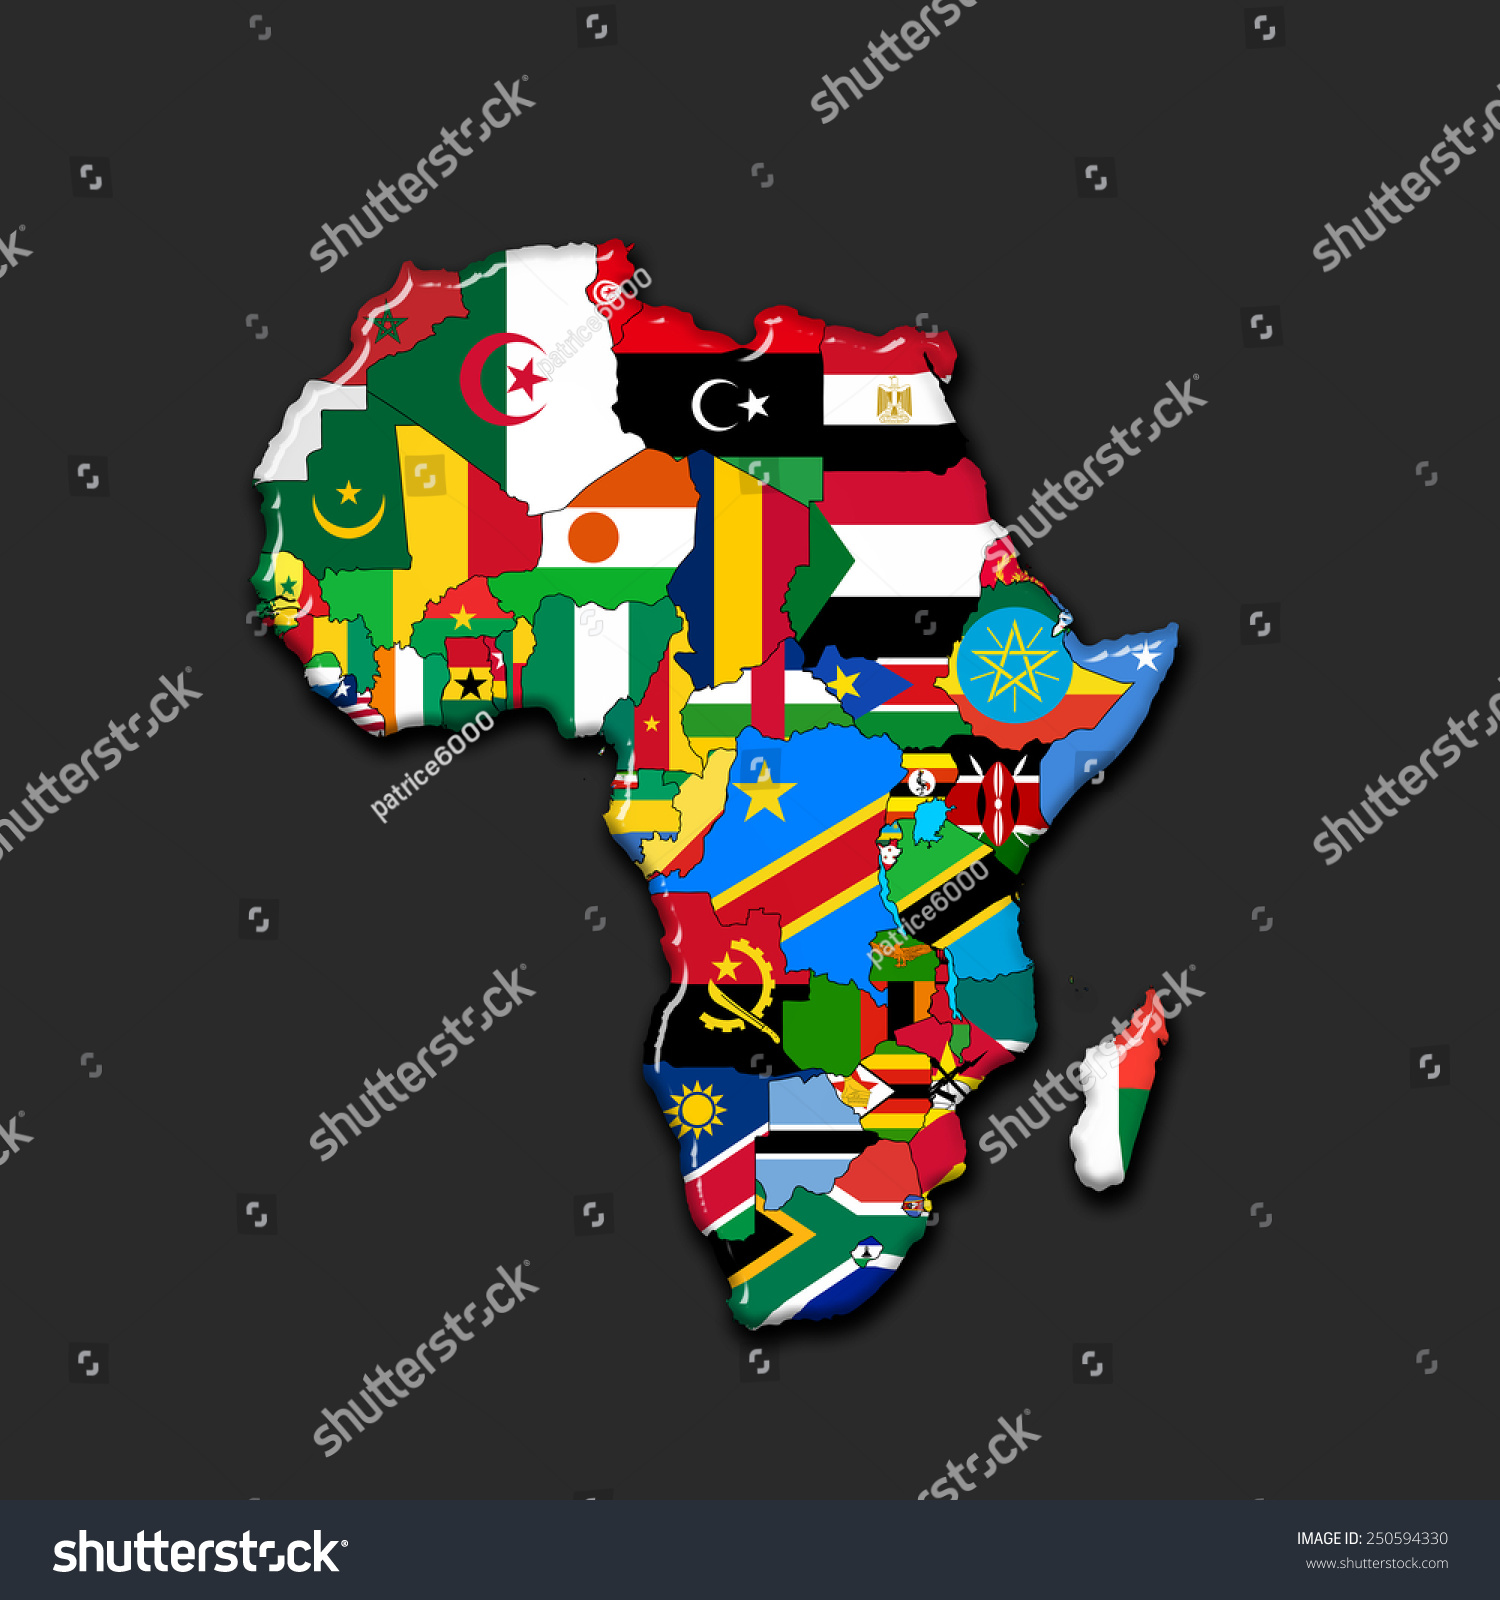 Map Of Africa With Flags.Africacontinent Flags Map Black Background Stock Illustration